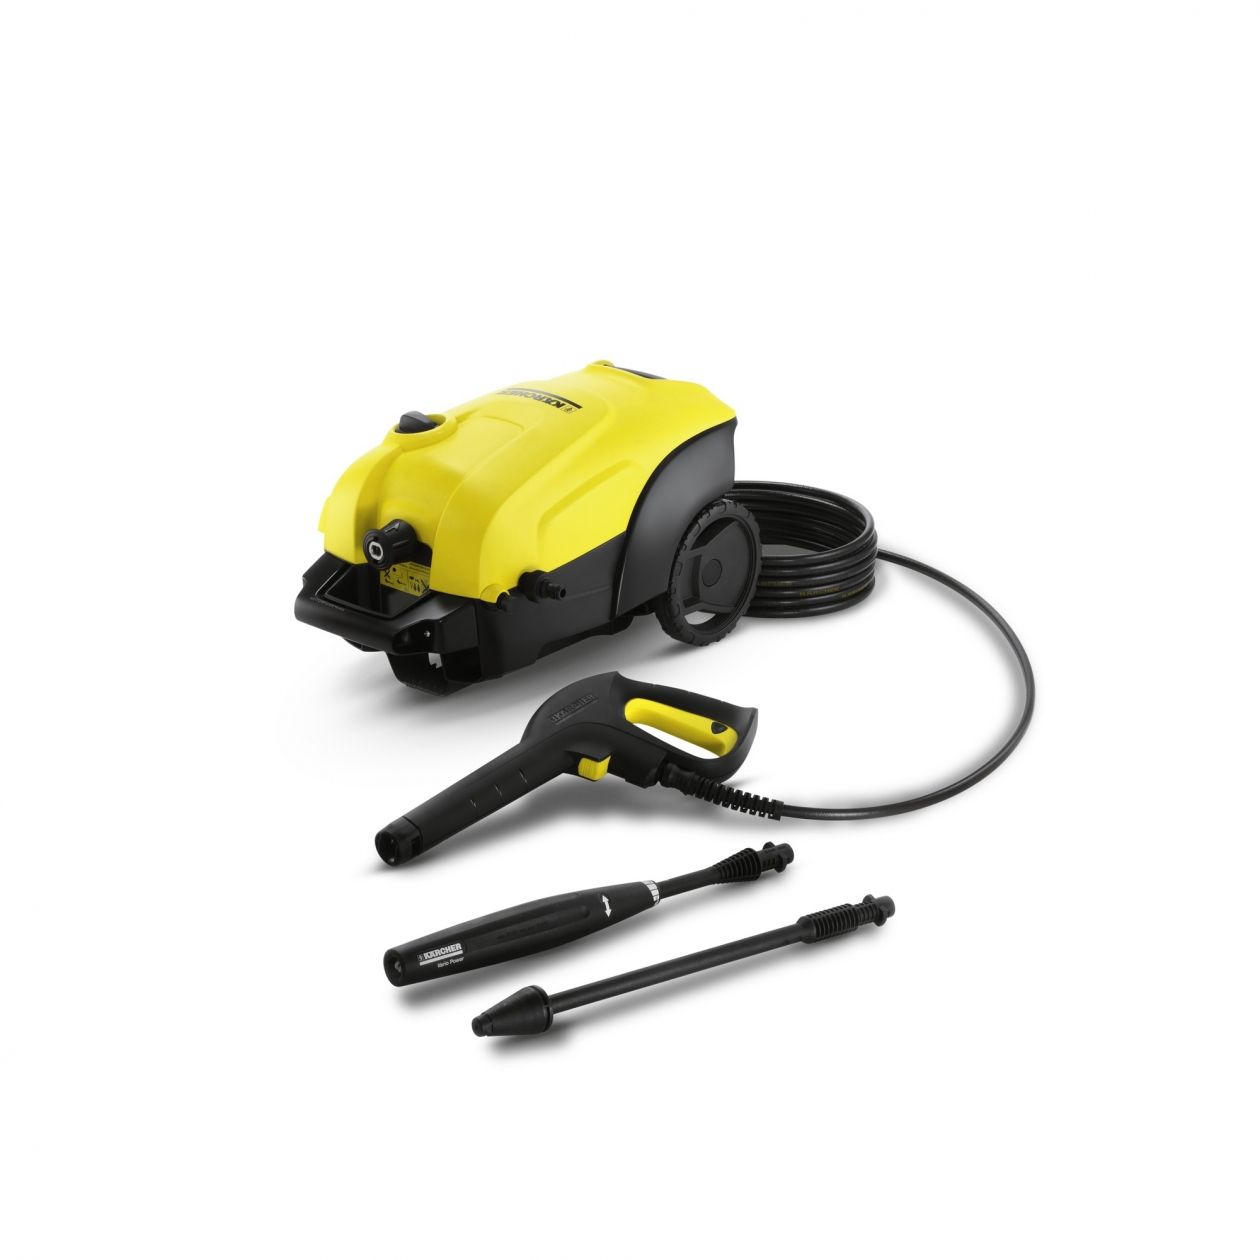 karcher k4 compact pressure washer a1 pressure washers. Black Bedroom Furniture Sets. Home Design Ideas